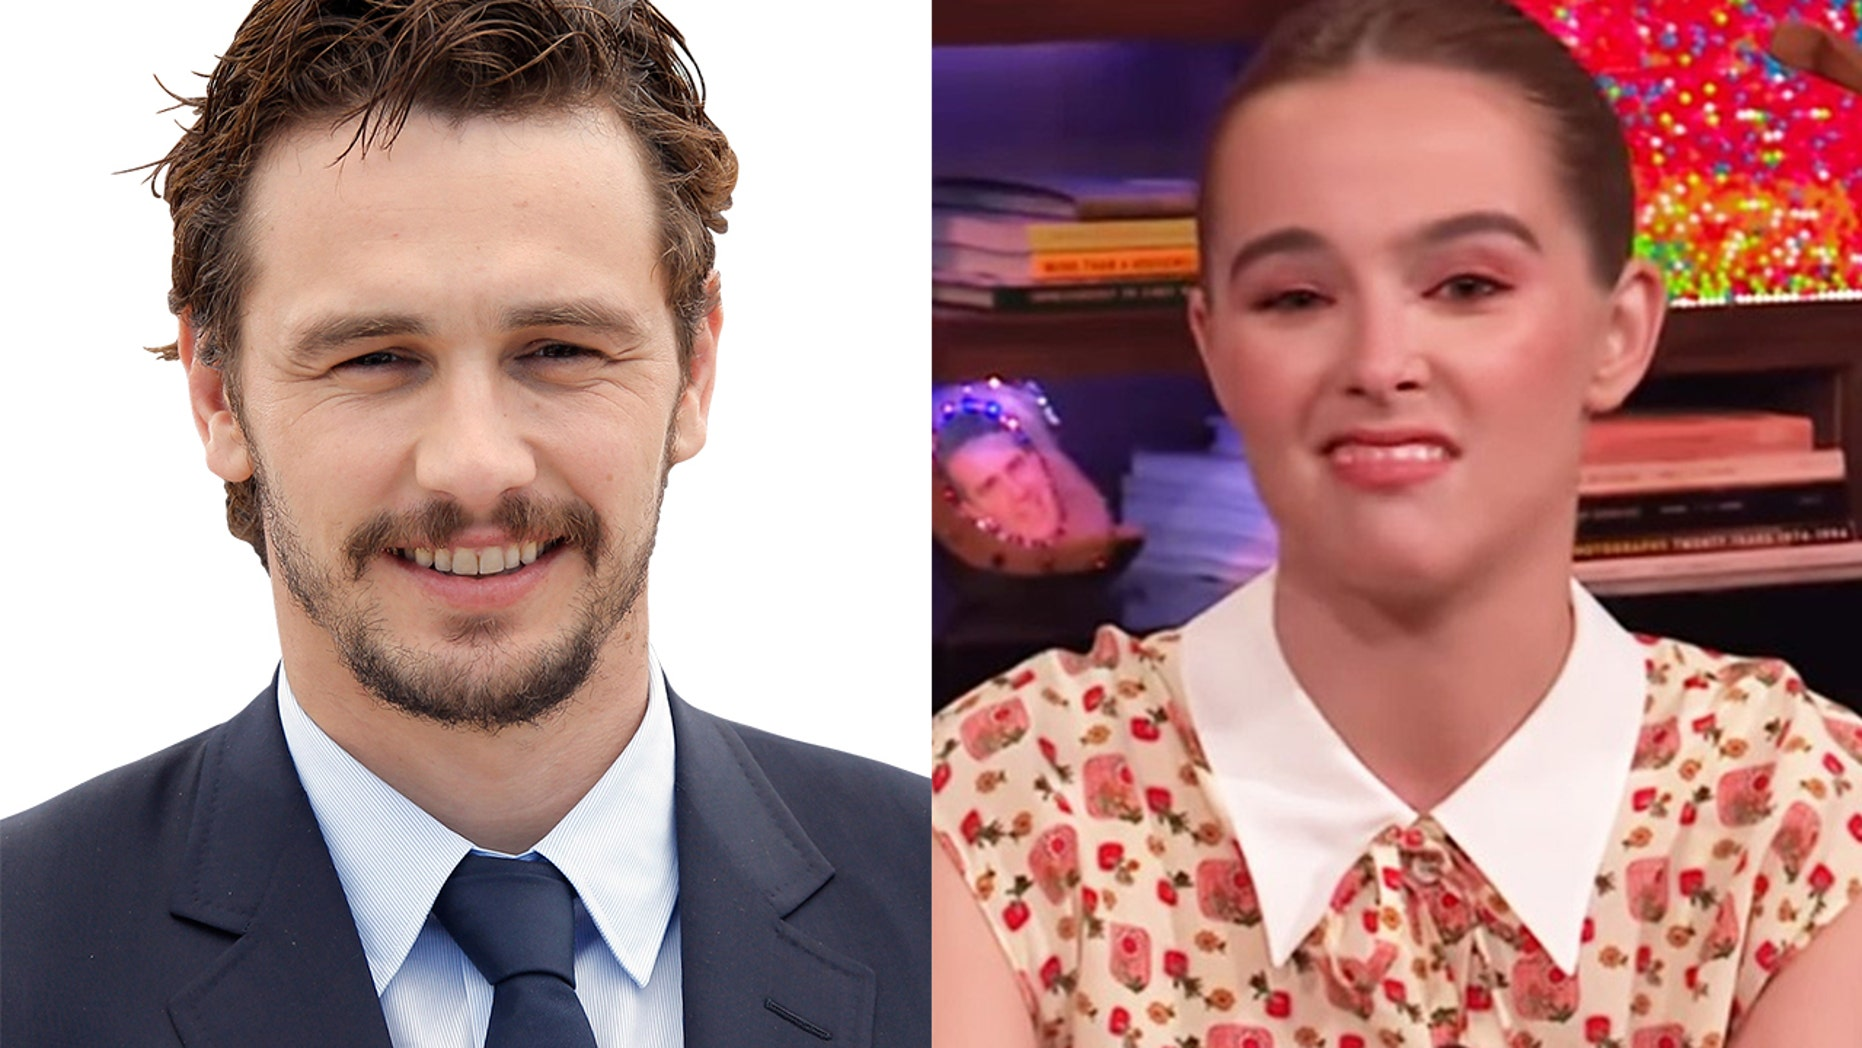 """Zoey Deutch discussed her former co-star James Franco's kissing abilities on """"Watch What Happens Live."""""""